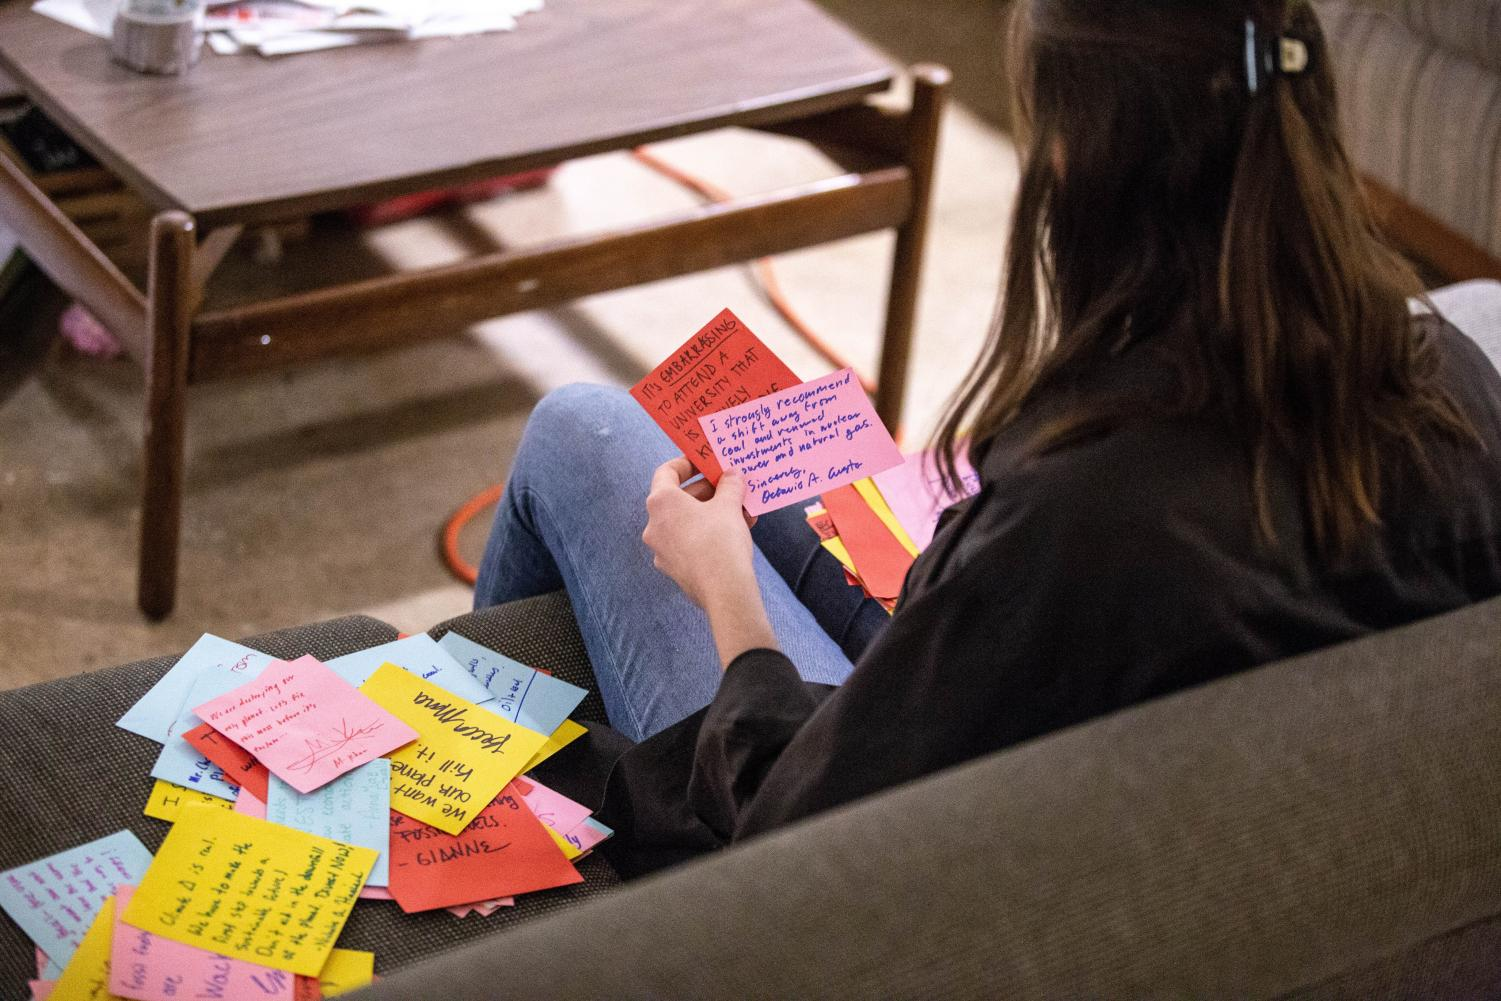 AnnaMae Dziallo, senior in ACES and president of Beyond Coal, sorts through letters from supportive students on Friday. Beyond Coal is an RSO at the forefront of the coal divestment movement, advocating for renewable resources such as solar, hydrological and geothermal energies.